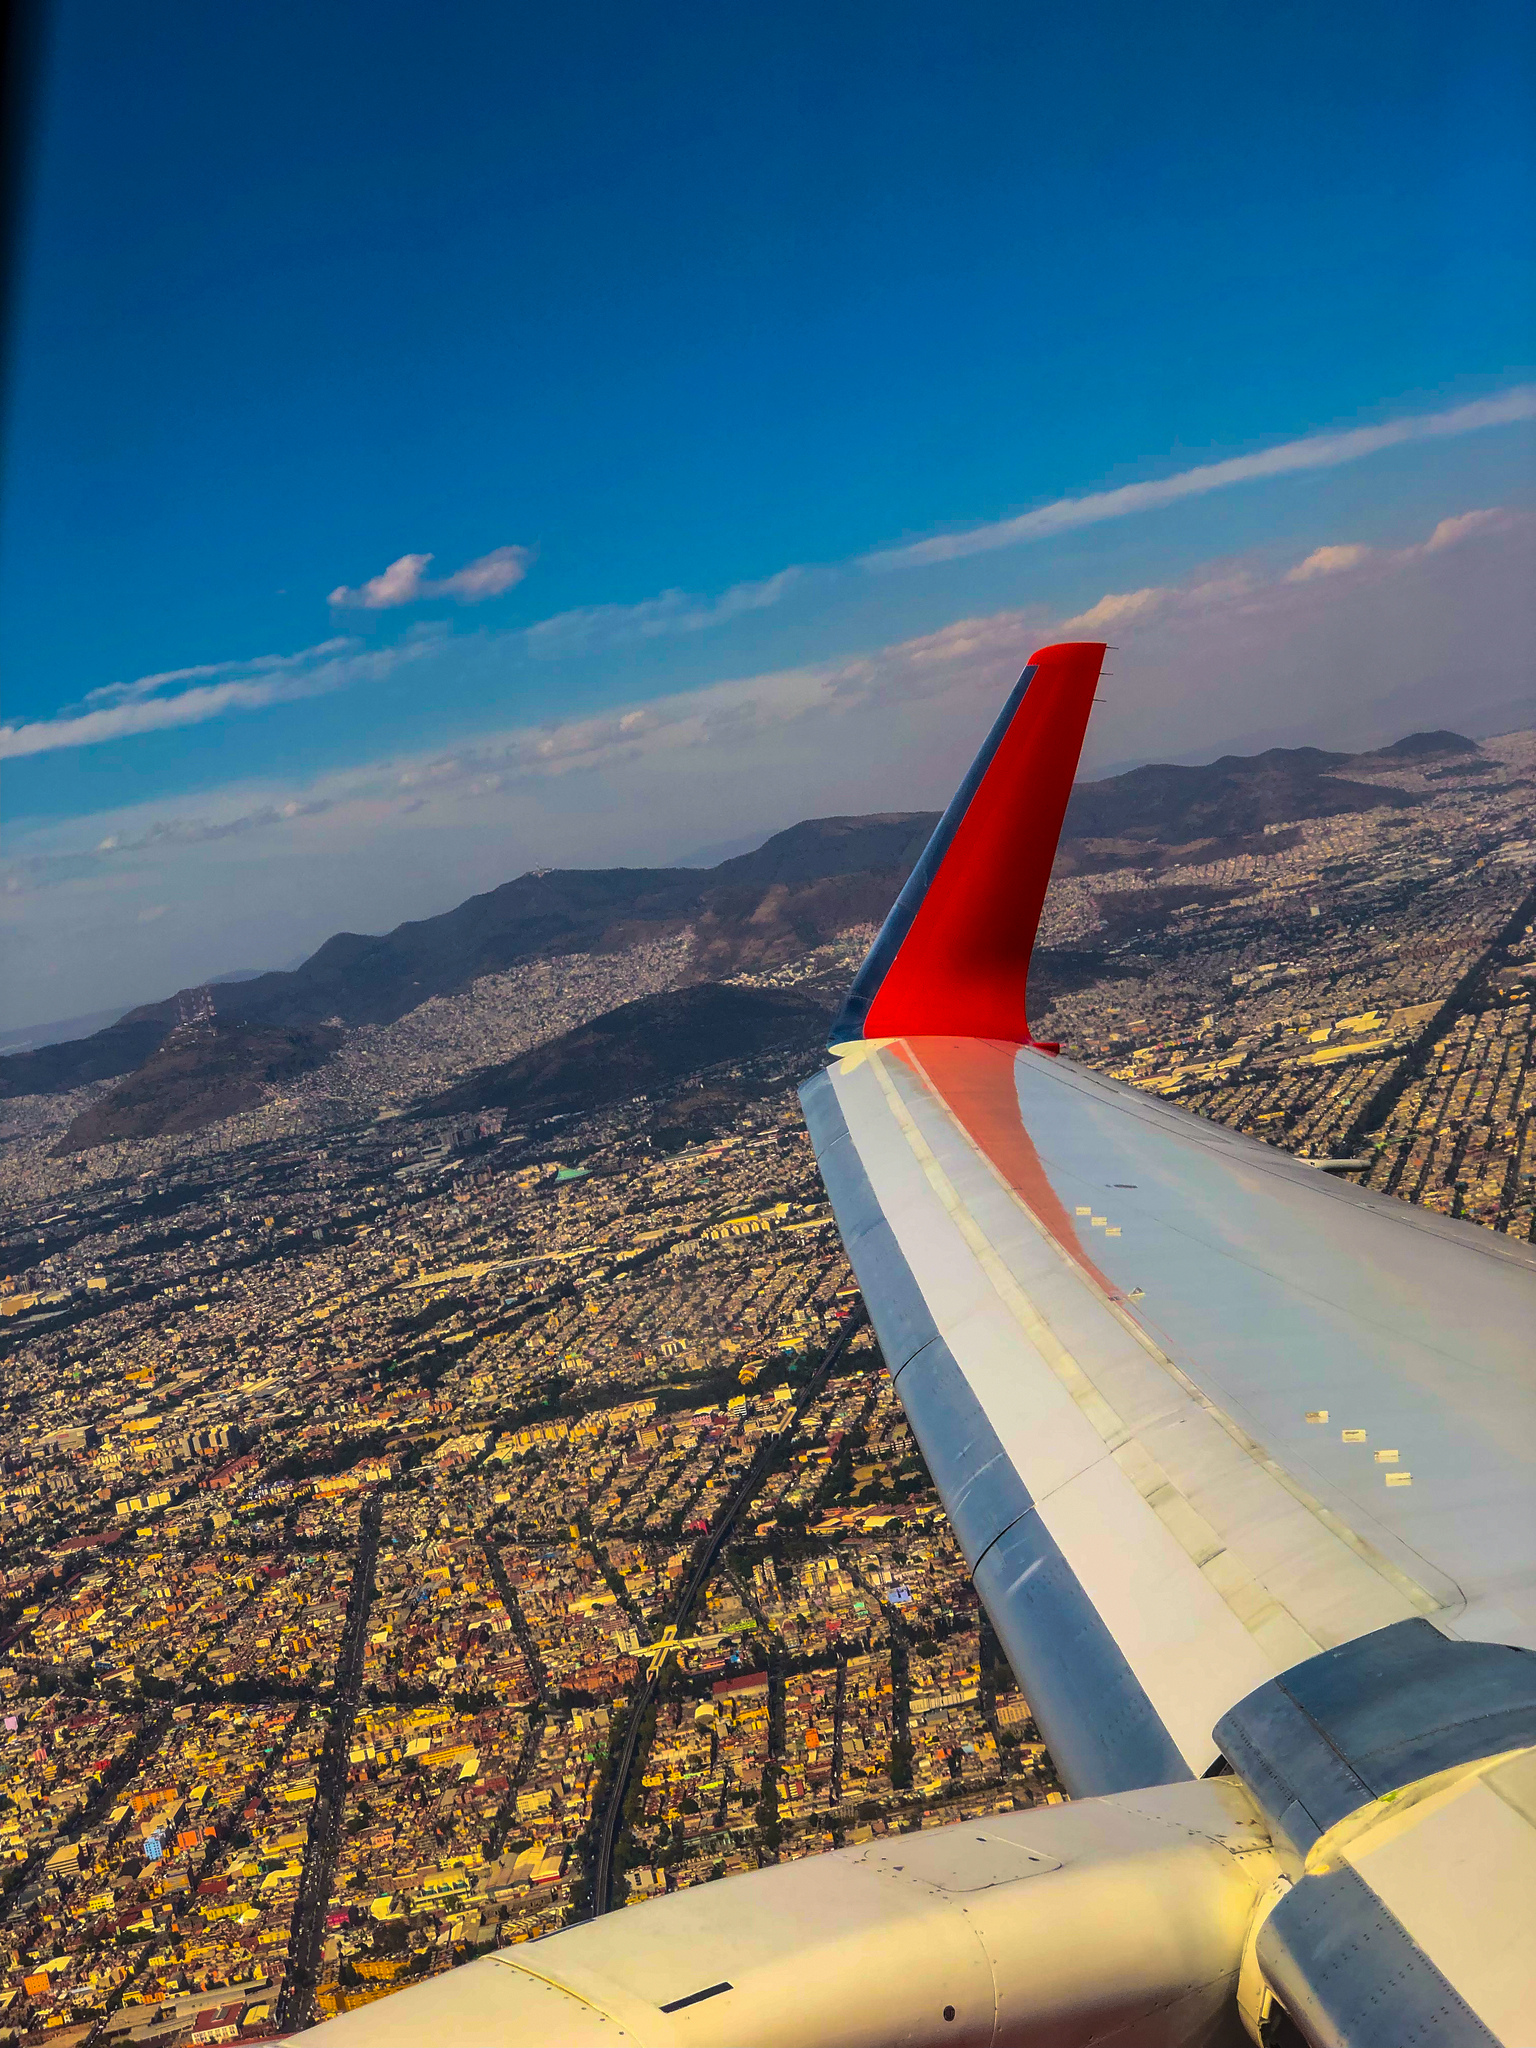 46186738624_5cdd2cb4e9_k.jpg11 Essential Things to Know Before you Visit Mexico City